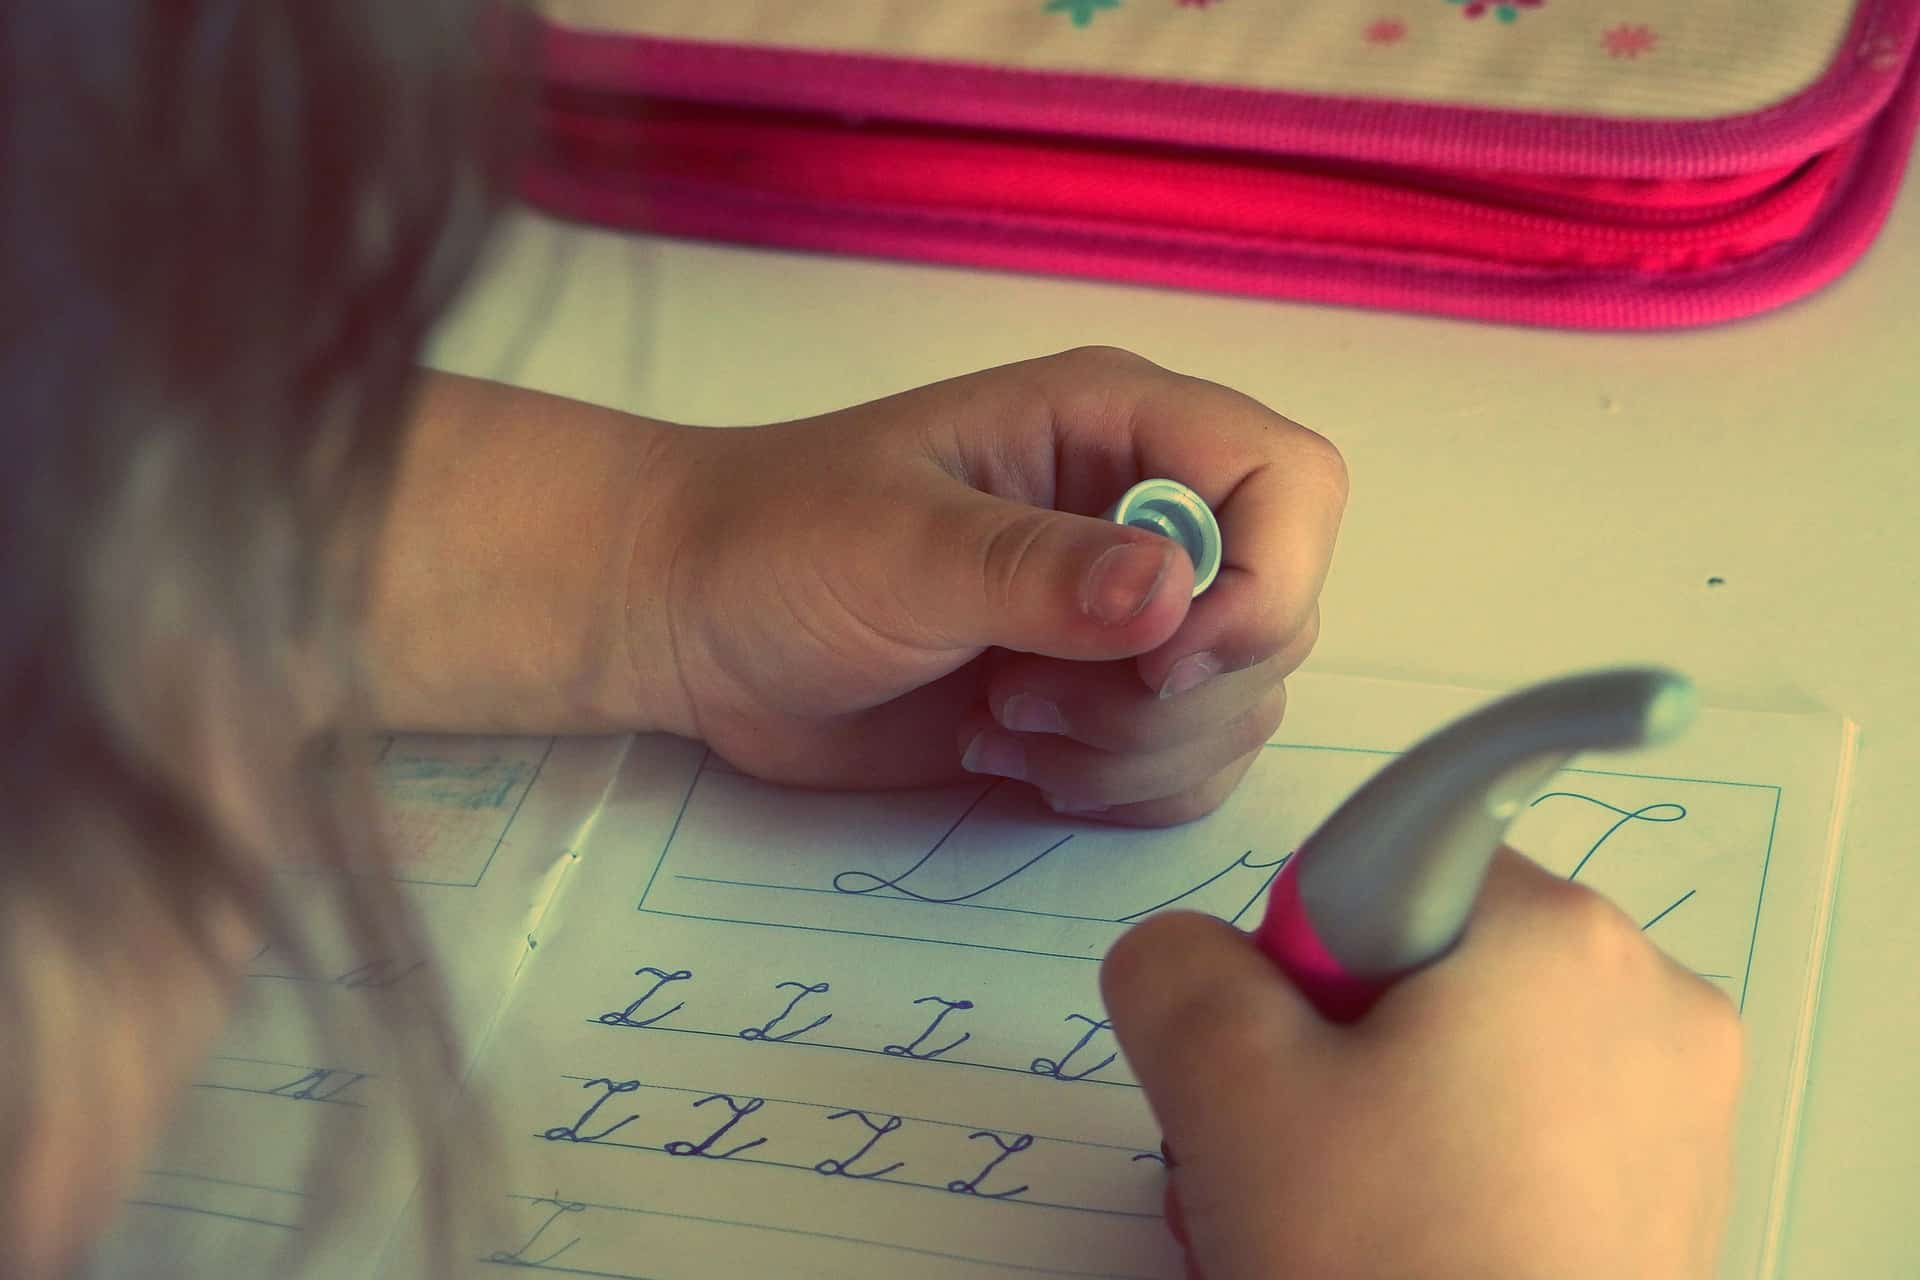 Helping our kids make time for homework can be a challenge. With these tips, we can successfully make time for homework without sacrificing our kids sanity. #homework #timemanagement #schedules